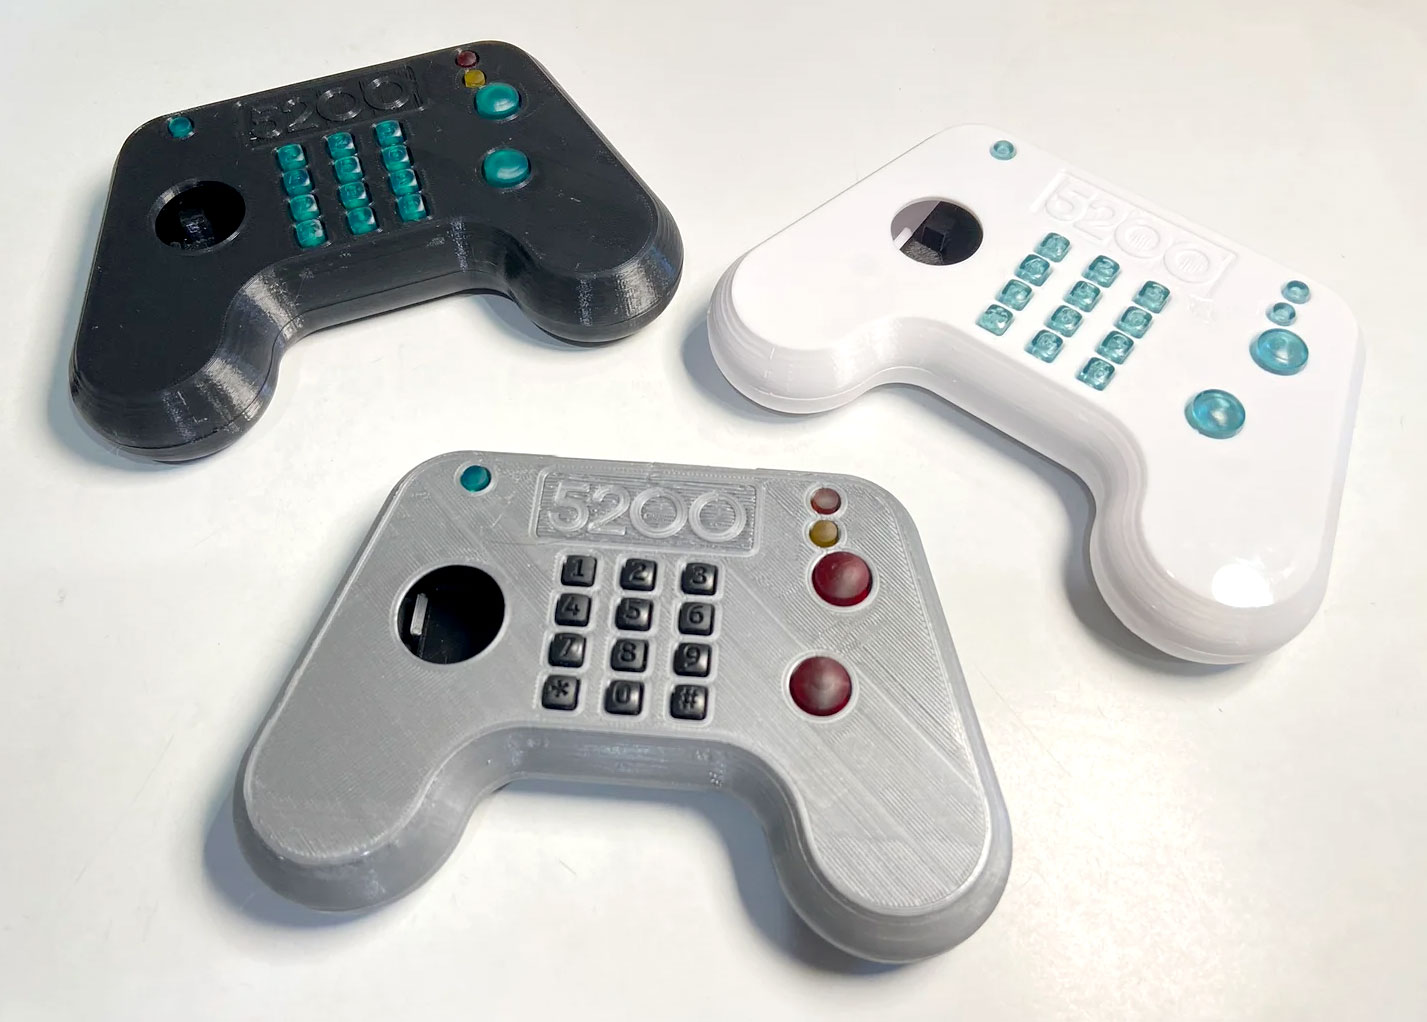 Maker Matrix's Atari 5200 controller